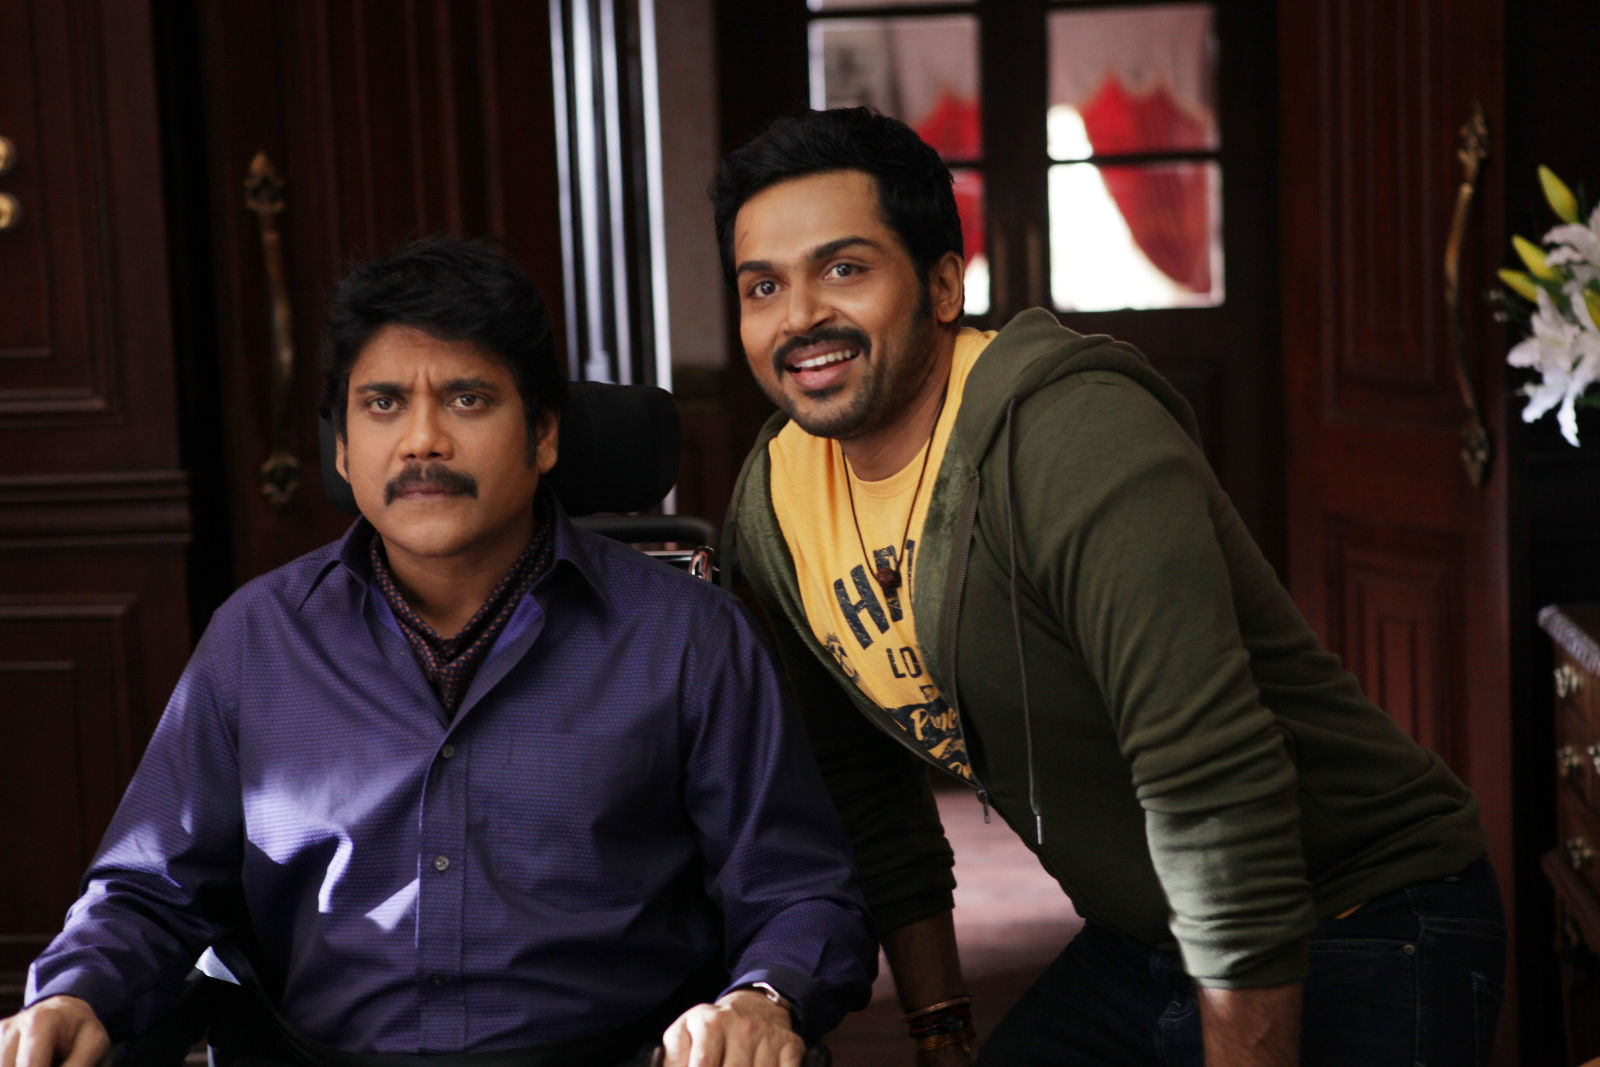 THE TEN COMMANDMENTS THAT PEOPLE CARRY HOME FROM THOZHA